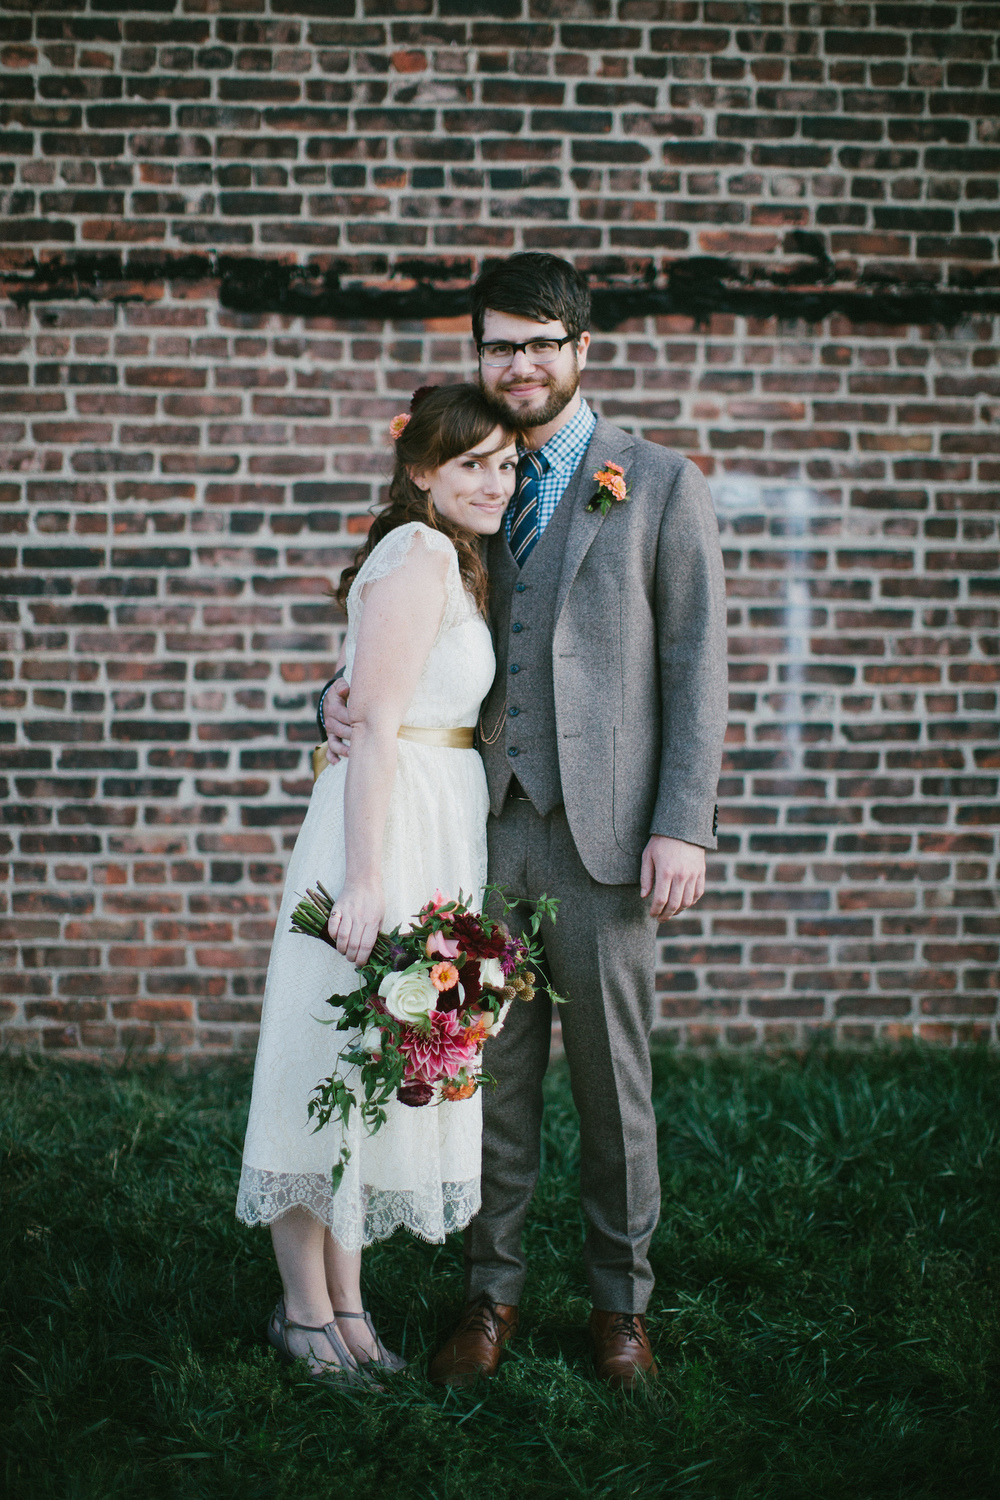 Full Aperture Floral & Corey Torpie Photography  - Brooklyn Wedding - 72.jpeg